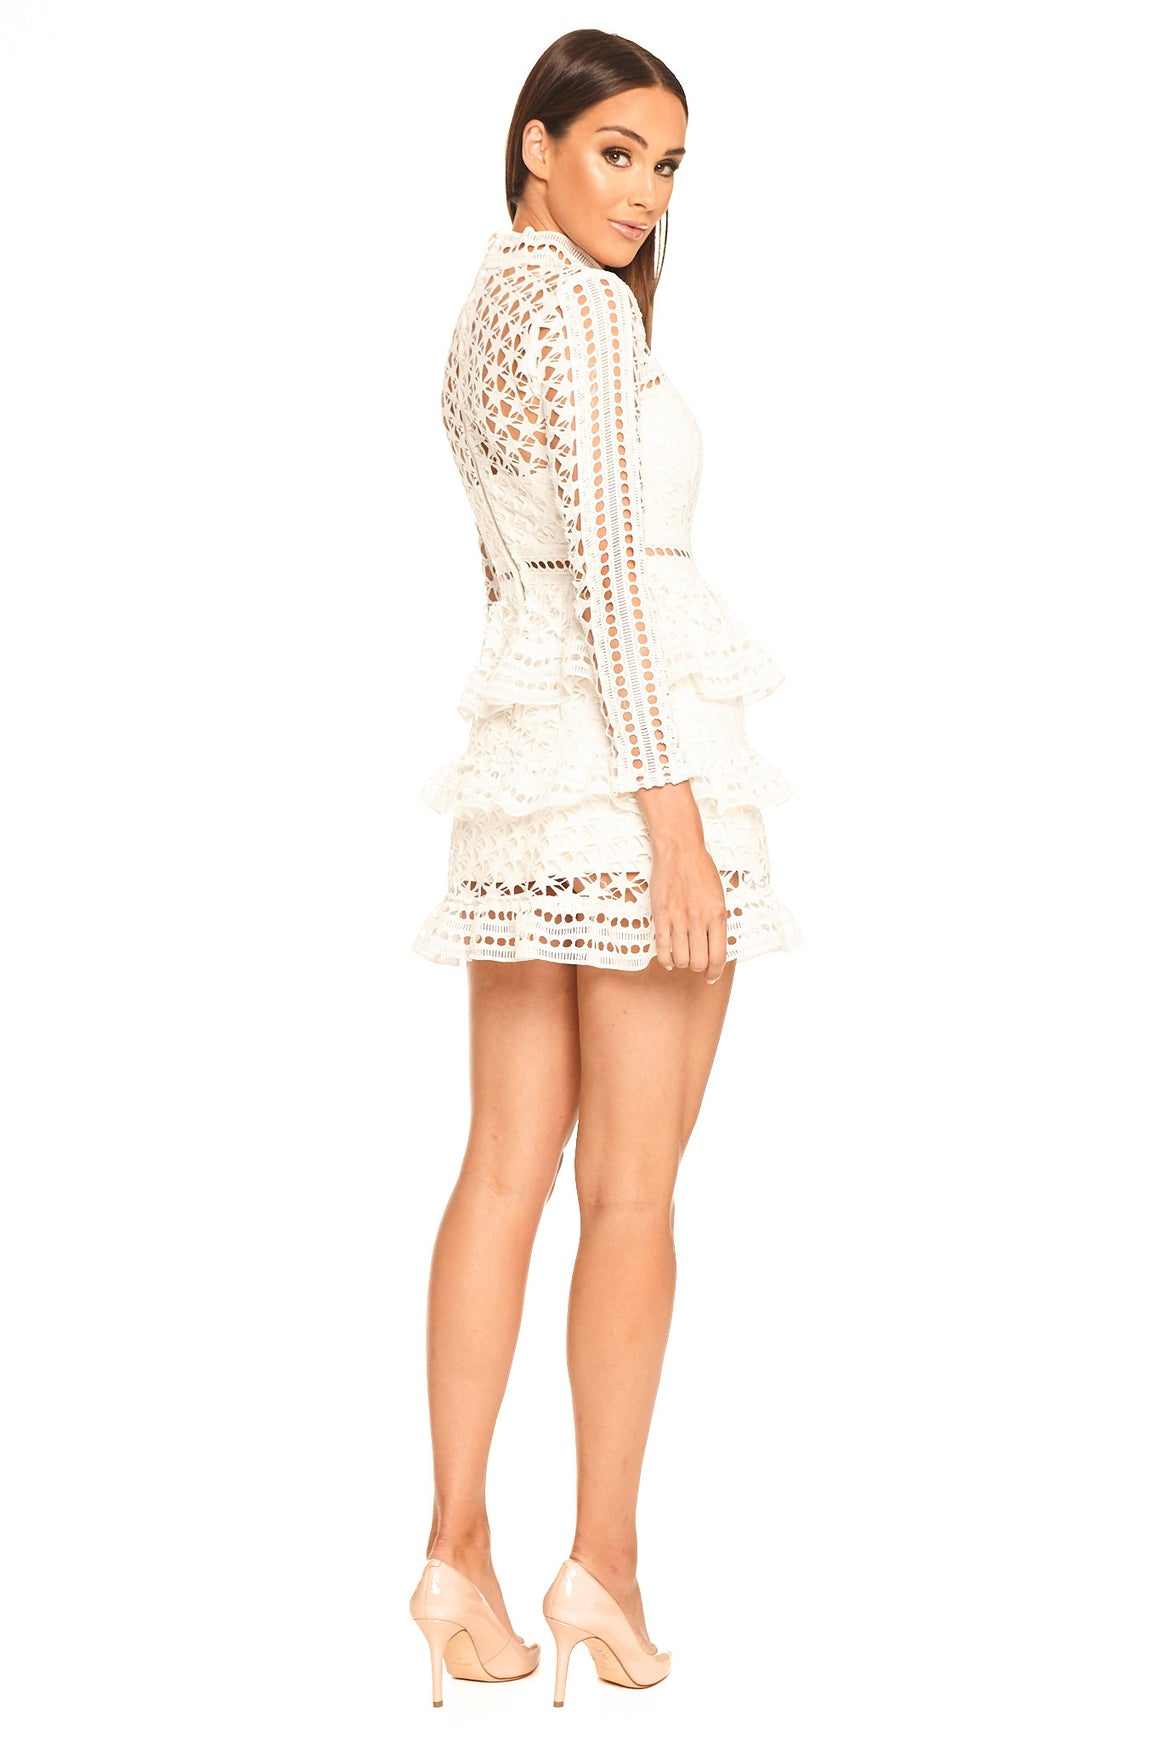 Chanelle Lace Peplum Dress - White